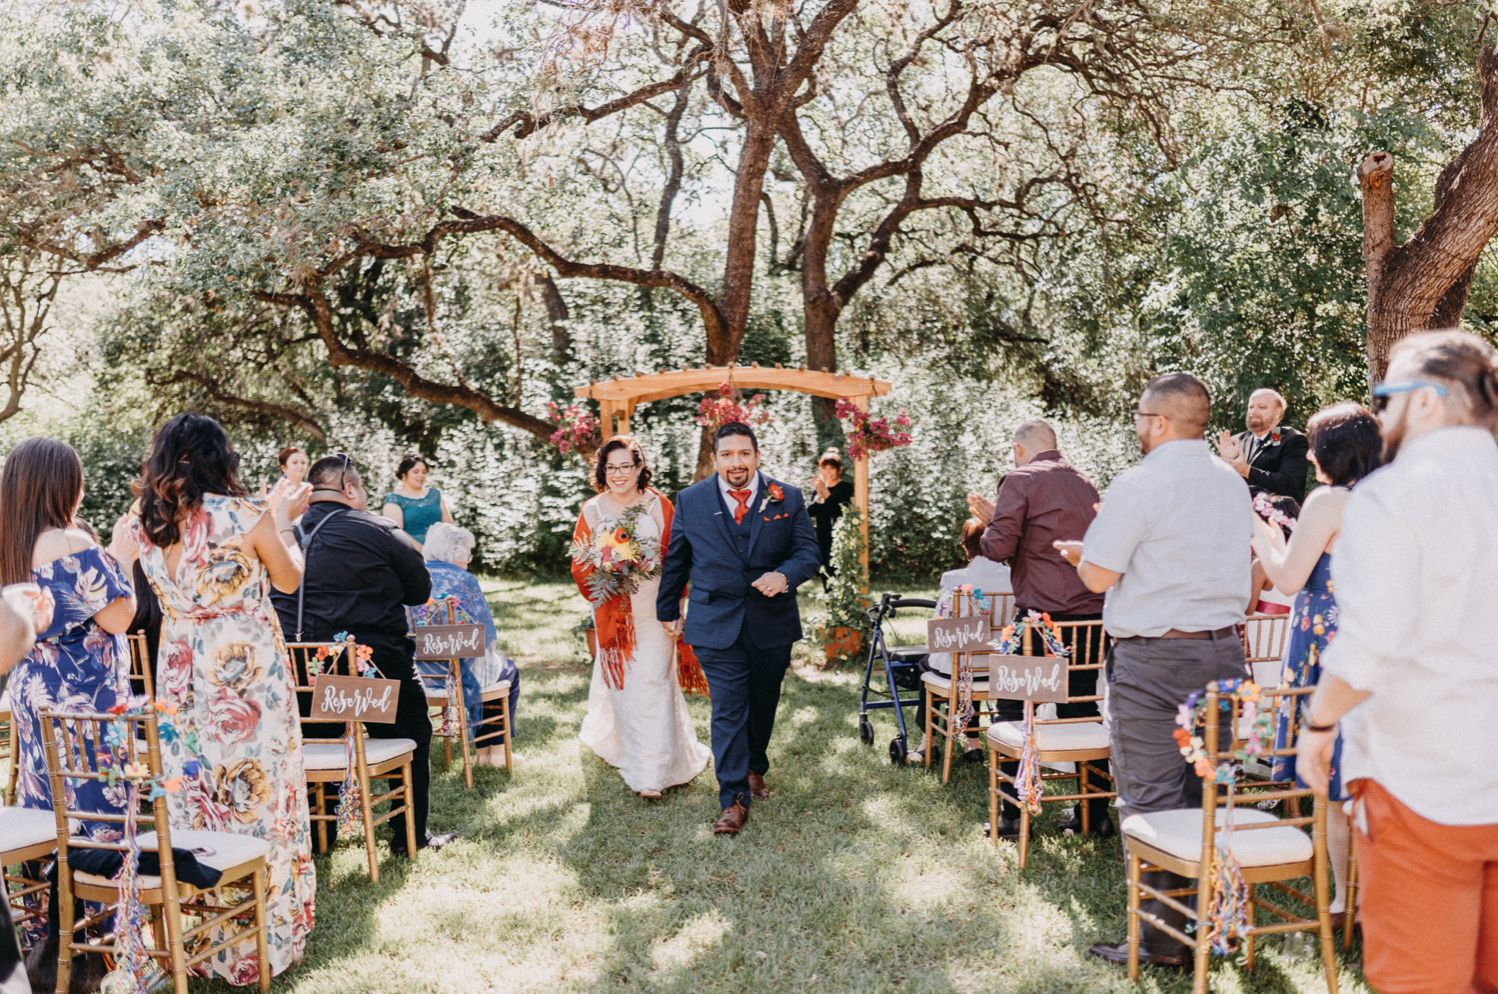 A wedding couple is walking back the aisle with their guests cheering with them.